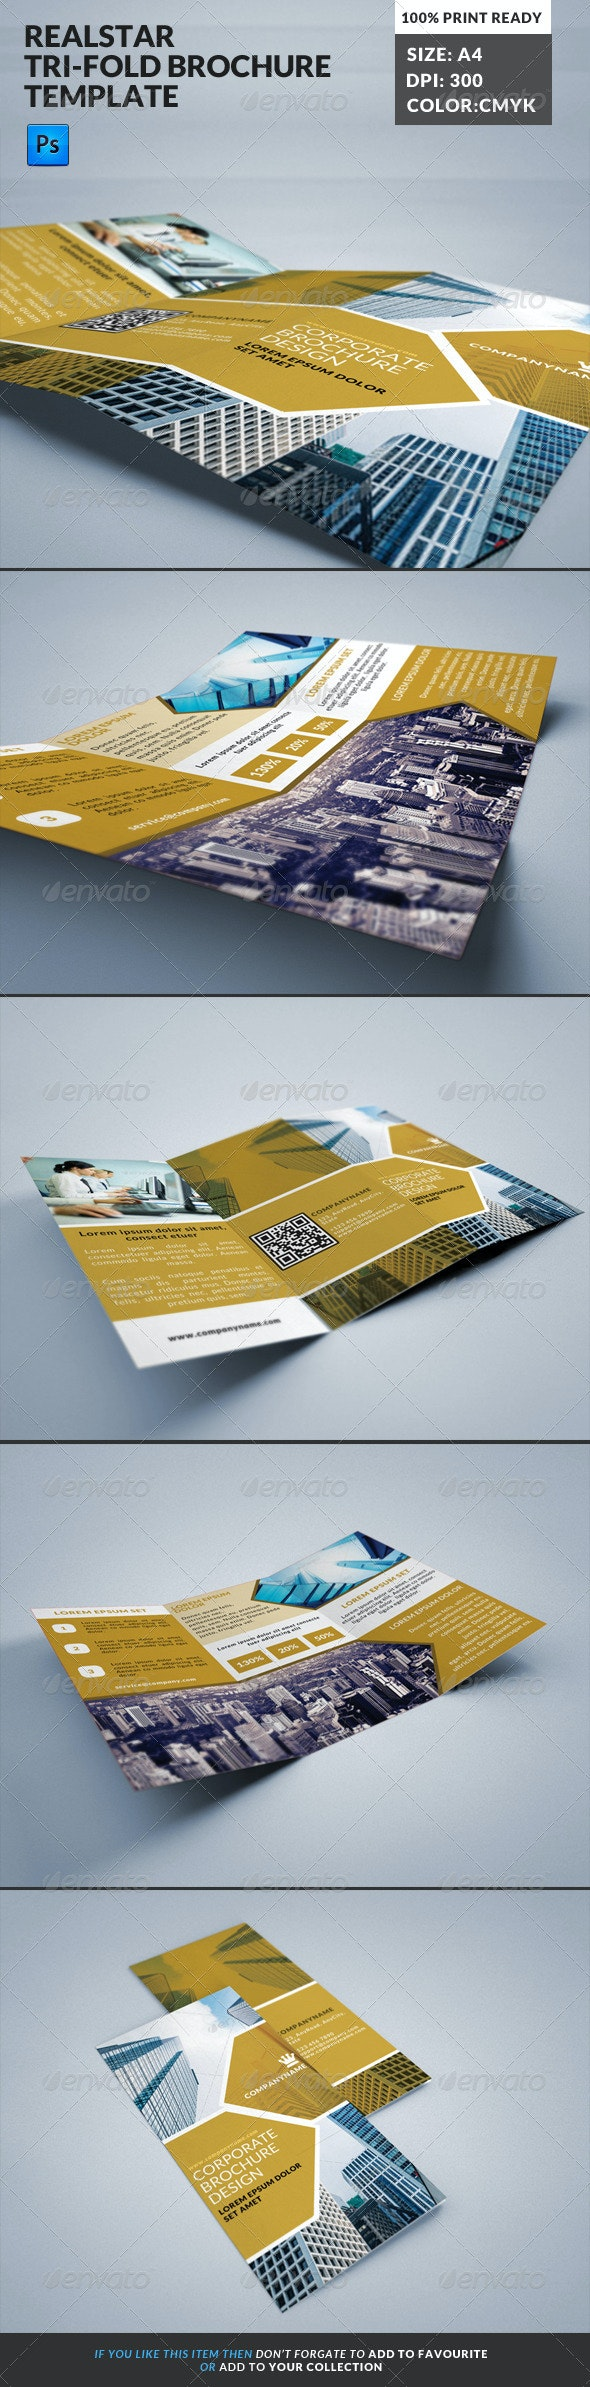 Ralstar Real State Tri-fold Brochure Template - Corporate Brochures